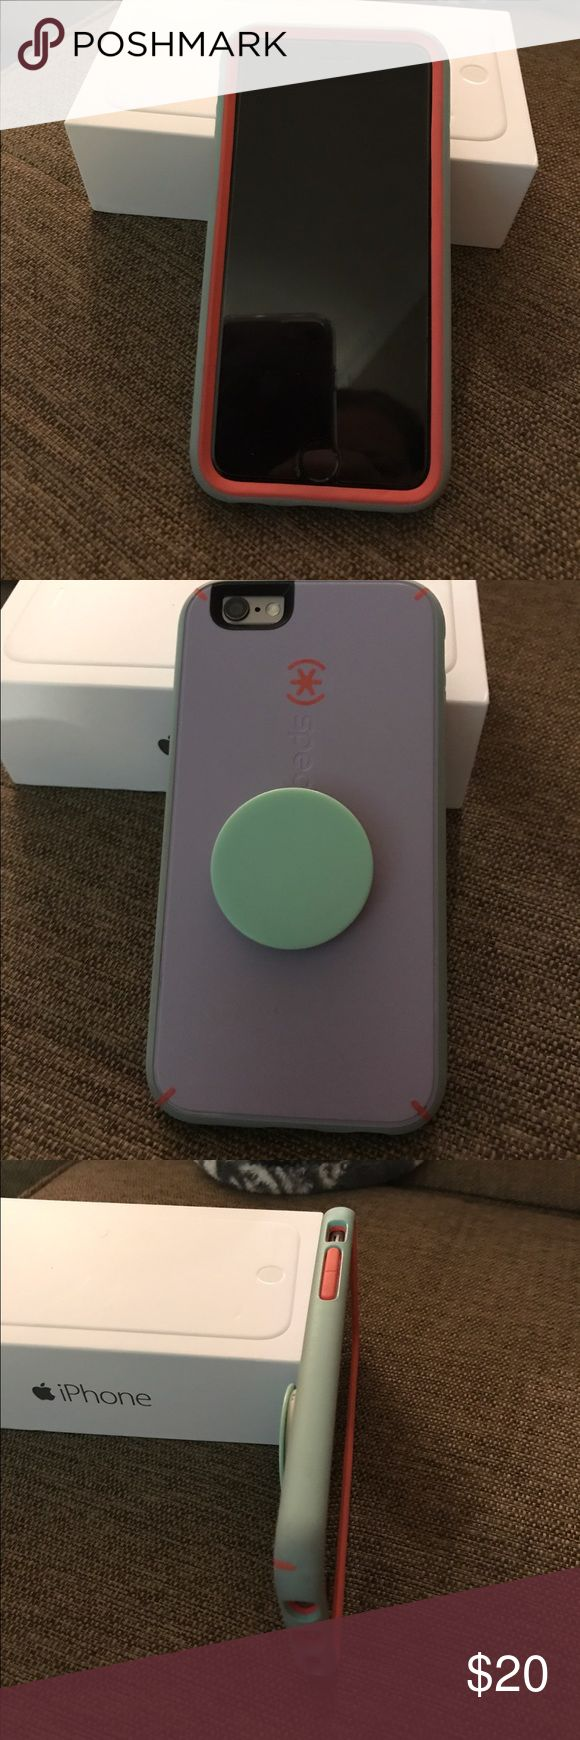 Speck IPhone 6 Case with Pop Socket Love my Speck phone case with pop socket; I recently upgraded to an iPhone 7 and can't use 😔; but this is a wonderful case for someone else; the pop socket is GREAT and helpful when texting, emailing, gaming...generally when you are using the phone a lot; it flattens when you put it in you pocket or purse; Case retails for $40 and Pop socket for $10; what a steal! 🙂 Speck Accessories Phone Cases